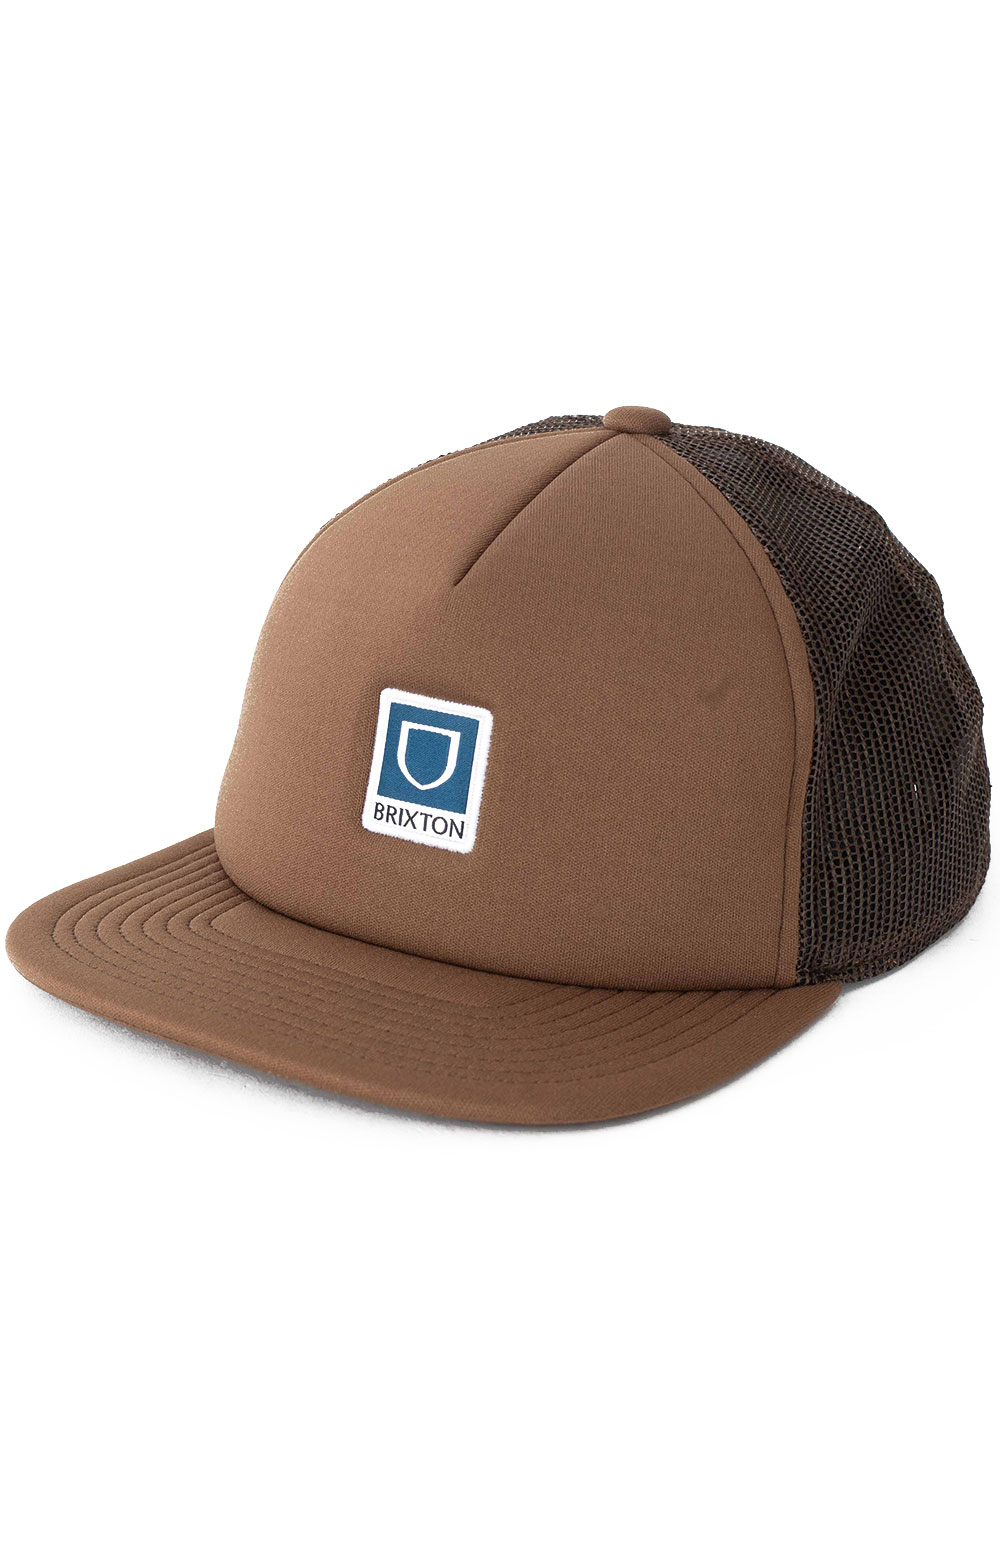 Beta MP Mesh Snap-Back Hat - Toffee